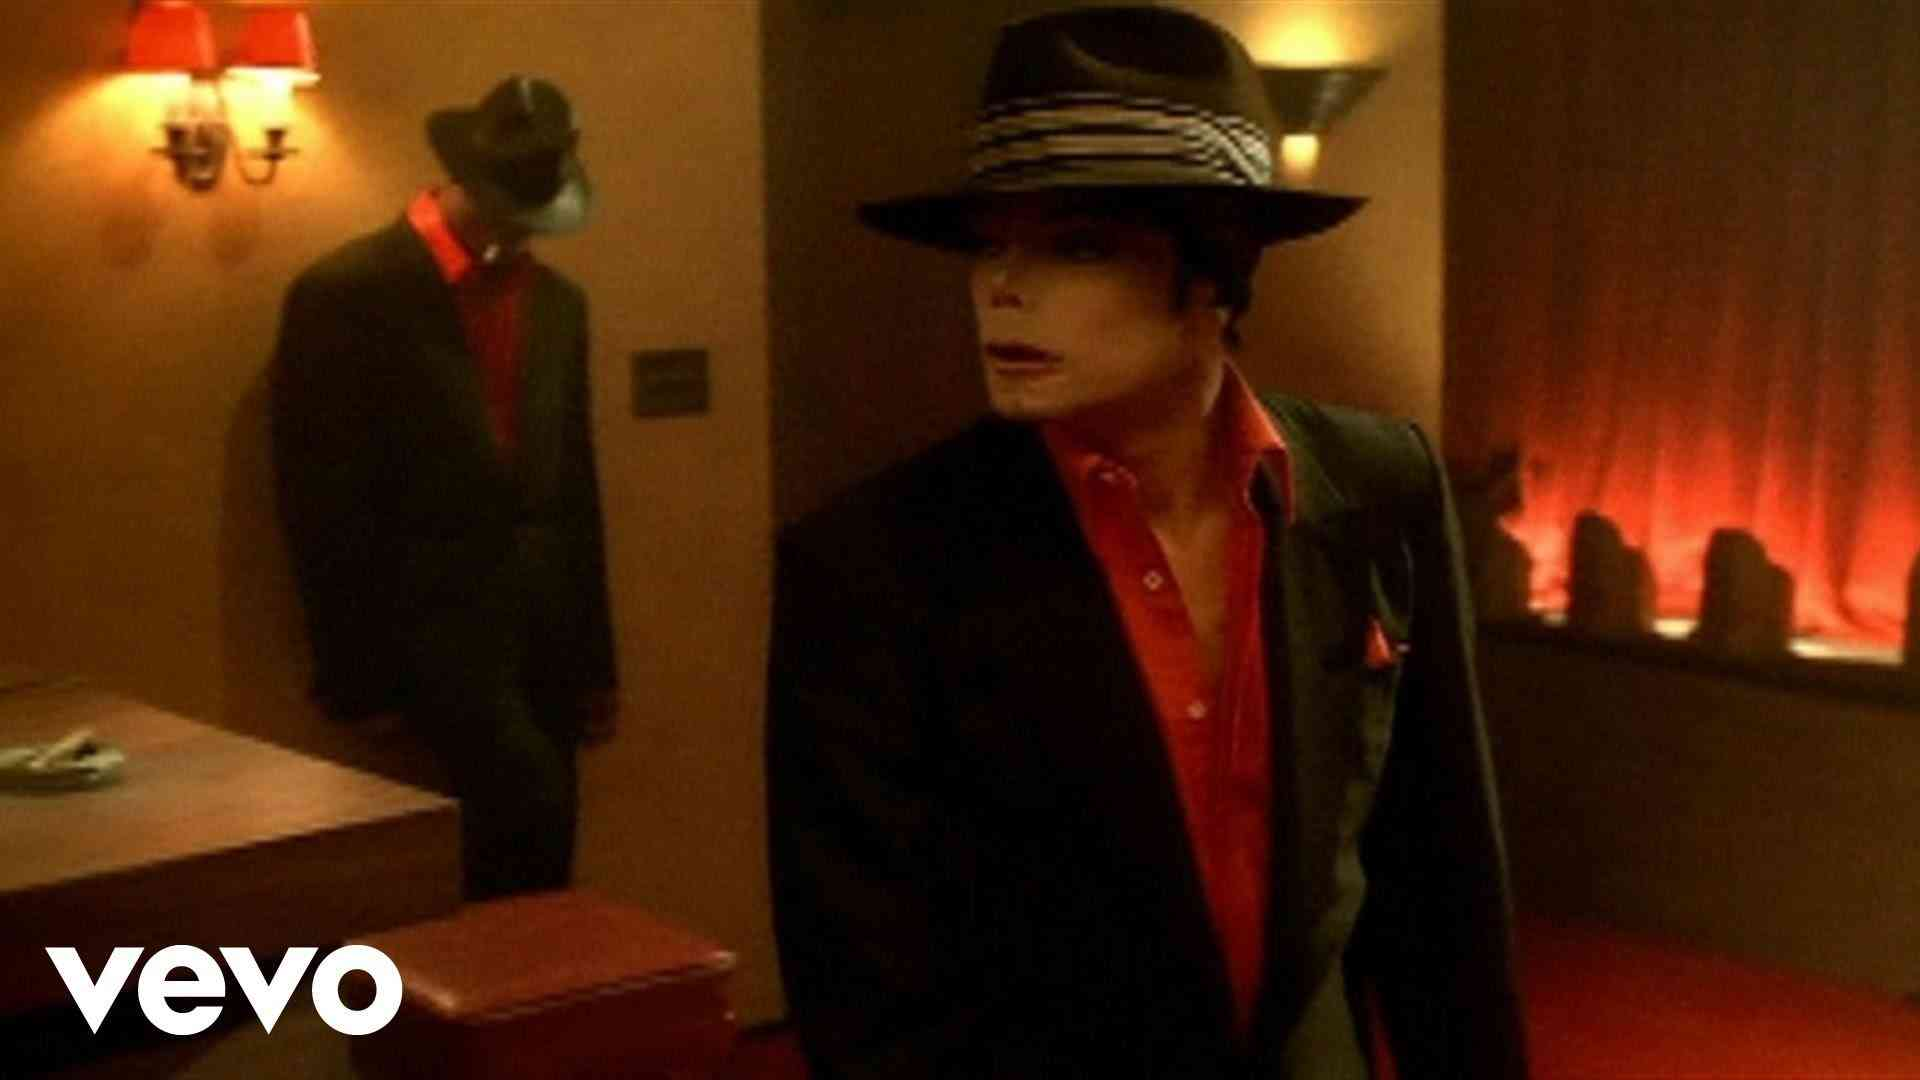 Michael Jackson - You Rock My World (Shortened Version) - YouTube